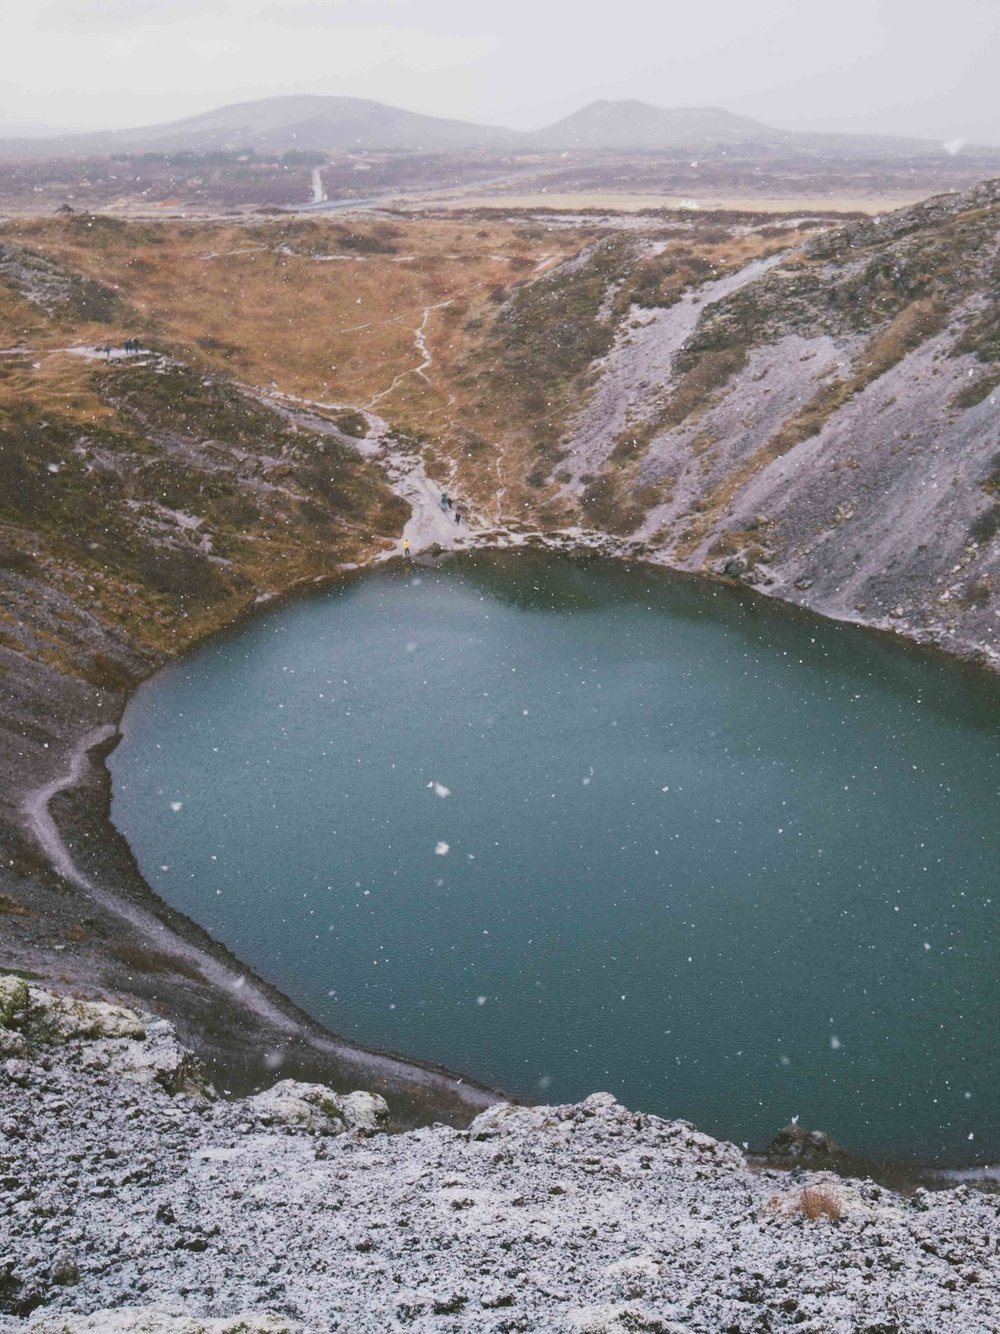 Kerig Crater Lake